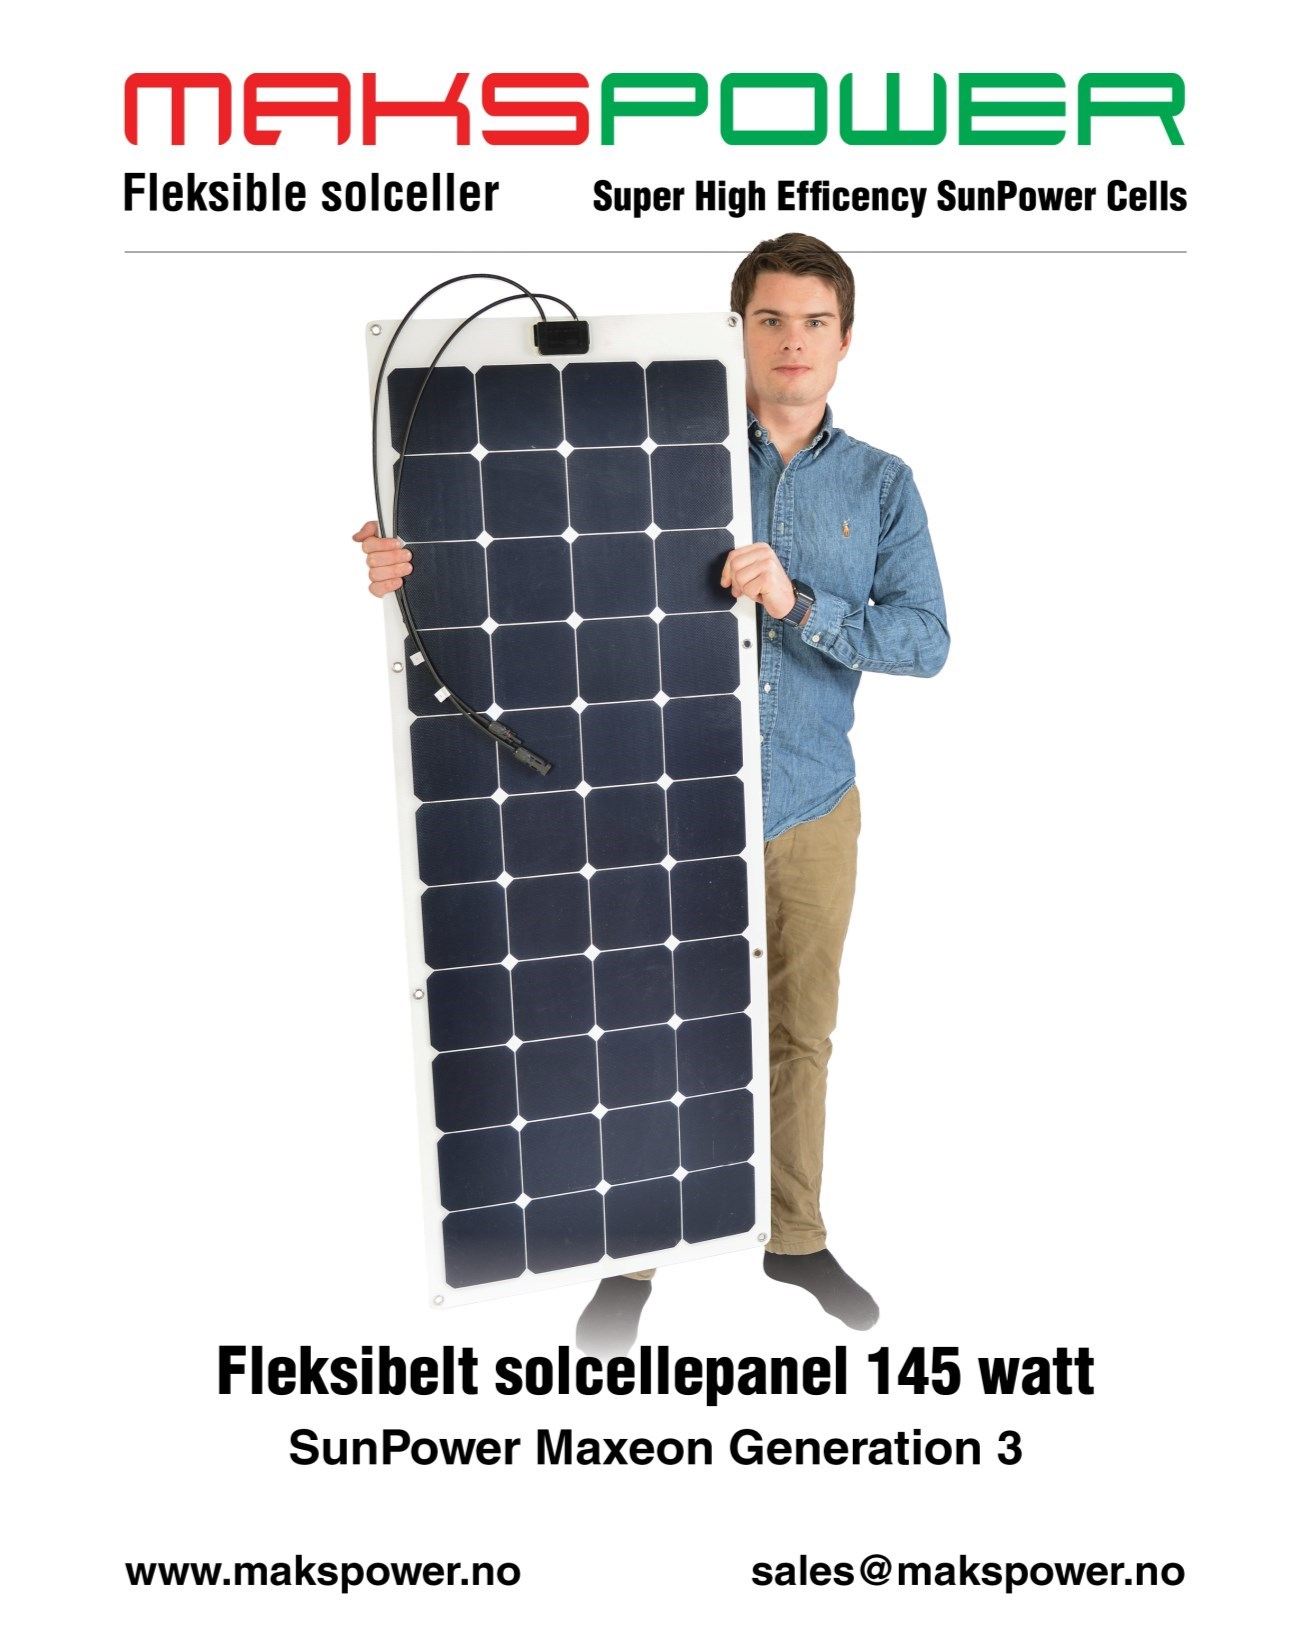 Makspower 145 Watt Fleksibelt solcellepanel SunPower Maxeon Generation 3